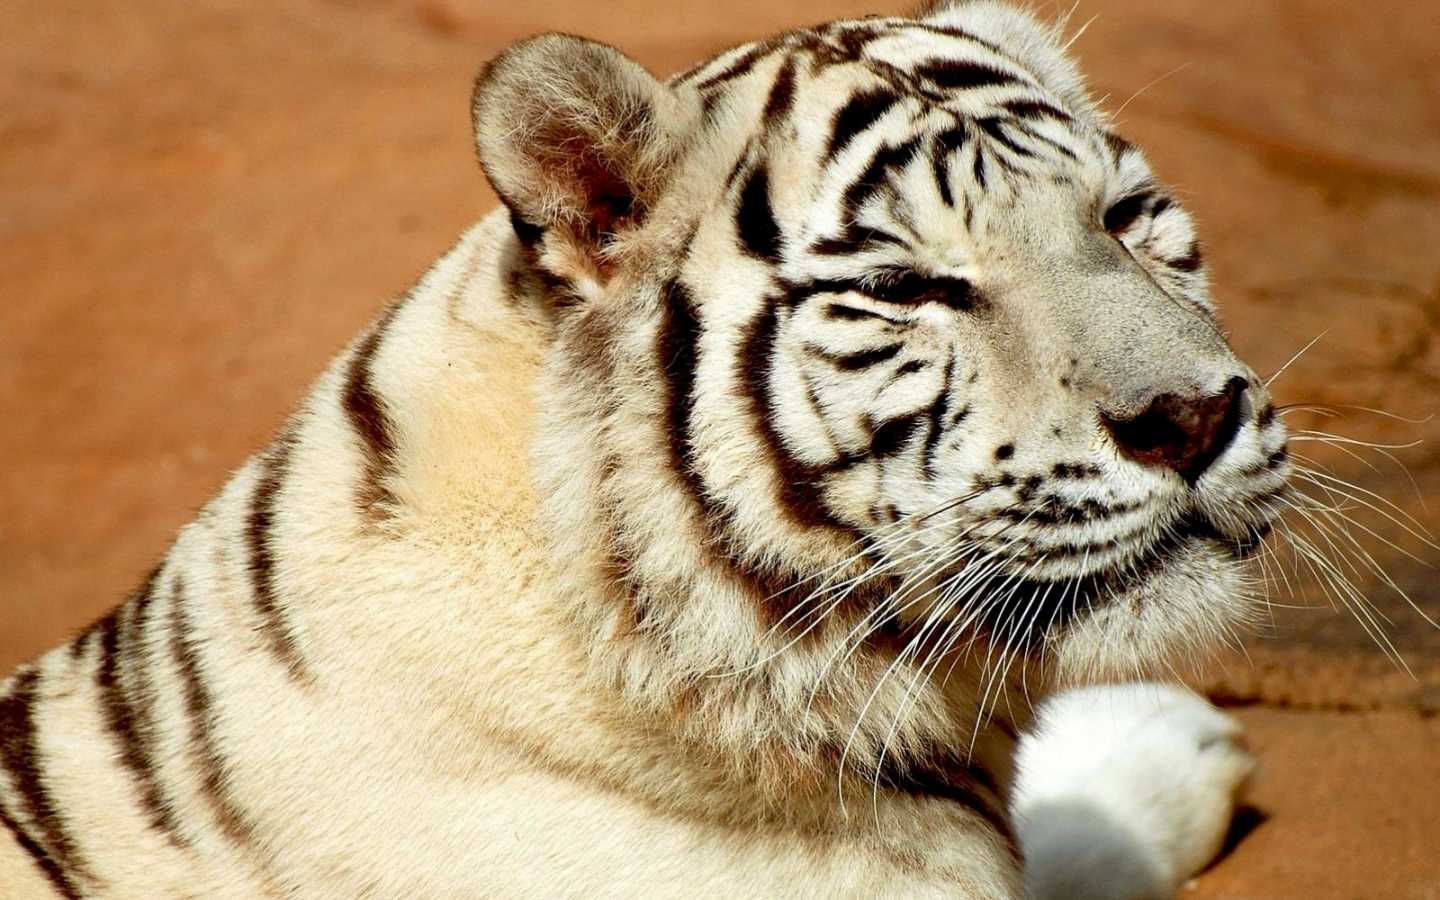 49119 download wallpaper Animals, Tigers screensavers and pictures for free